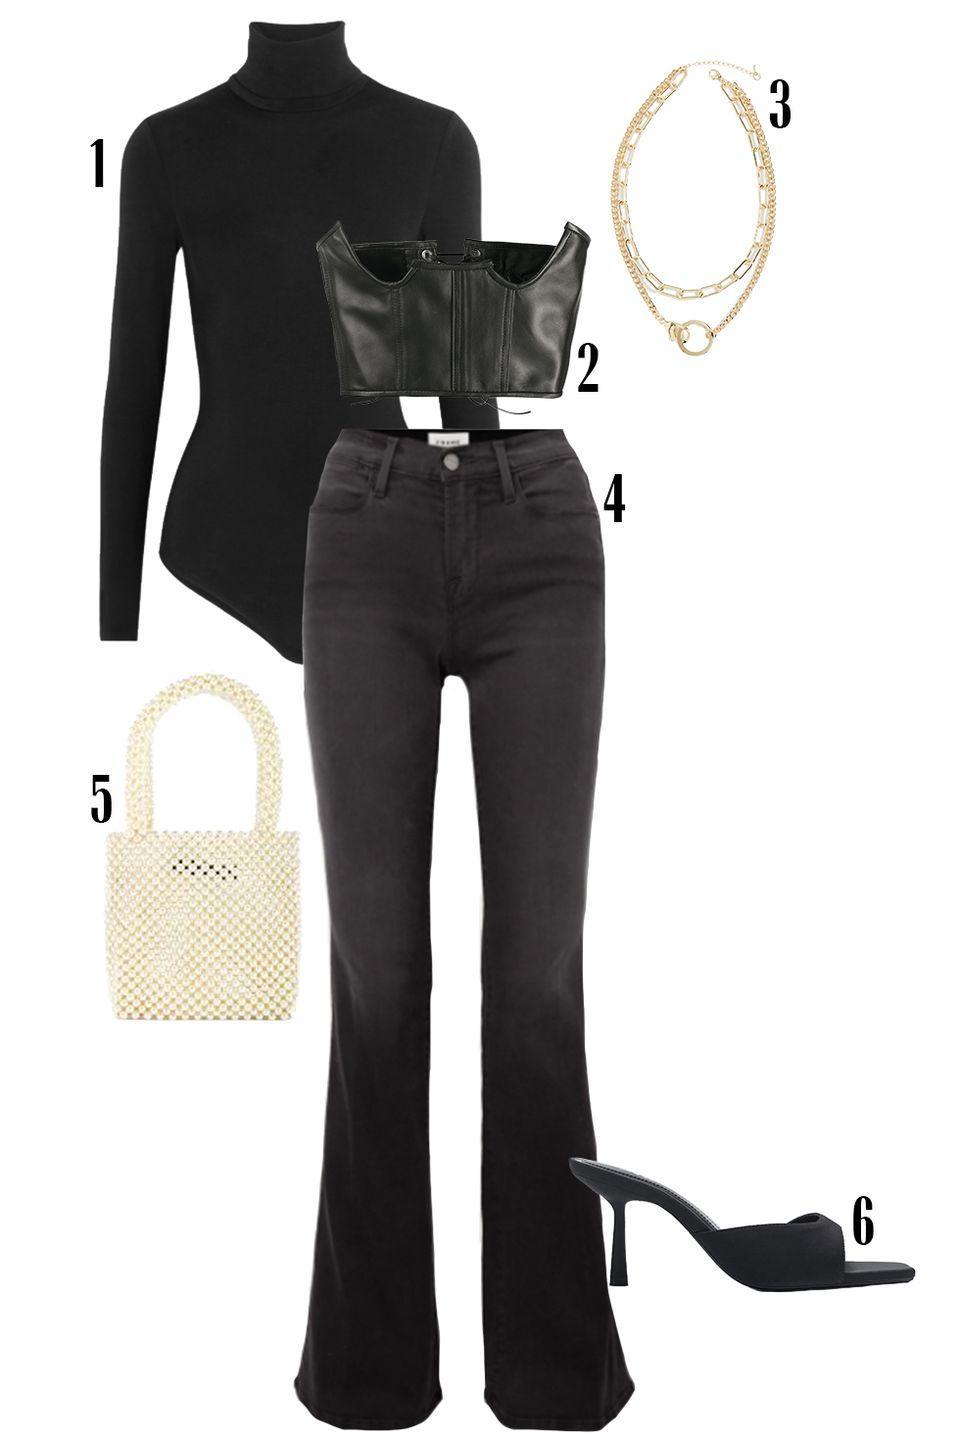 """<p>Full coverage can be even more sexy than showing skin. Flaunt your figure with this leather corset layered over your turtleneck and a pair of dark denim that are slim through the thighs and flare at the hem. This look accentuates your curves while leaving everything to the imagination. </p><p>Shop the pieces: <em><a href=""""https://www.net-a-porter.com/en-us/shop/product/wolford/colorado-thong-bodysuit/618045"""" rel=""""nofollow noopener"""" target=""""_blank"""" data-ylk=""""slk:Wolford Colorado Bodysuit"""" class=""""link rapid-noclick-resp"""">Wolford Colorado Bodysuit</a></em><em>,</em> $250; <em><a href=""""https://www.farfetch.com/shopping/women/manokhi-cut-out-corset-belt-item-15499995.aspx?storeid=9421"""" rel=""""nofollow noopener"""" target=""""_blank"""" data-ylk=""""slk:Manokhi Corset Belt"""" class=""""link rapid-noclick-resp"""">Manokhi Corset Belt</a></em>, $344; <em><a href=""""https://www.shopbop.com/lobster-claw-pendant-necklace-jules/vp/v=1/1598588255.htm"""" rel=""""nofollow noopener"""" target=""""_blank"""" data-ylk=""""slk:Jules Smith Necklace"""" class=""""link rapid-noclick-resp"""">Jules Smith Necklace</a></em>, a $70; <em><a href=""""https://www.net-a-porter.com/en-us/shop/product/frame/le-high-flare-jeans/1293228"""" rel=""""nofollow noopener"""" target=""""_blank"""" data-ylk=""""slk:Frame Denim"""" class=""""link rapid-noclick-resp"""">Frame Denim</a></em><em>,</em> $240; <em><a href=""""https://www.revolve.com/lovers-friends-arielle-pearl-mini-tote/dp/LOVF-WY52/"""" rel=""""nofollow noopener"""" target=""""_blank"""" data-ylk=""""slk:Arielle Pearl Mini Bag"""" class=""""link rapid-noclick-resp"""">Arielle Pearl Mini Bag</a></em>, $119, <em><a href=""""https://www.zara.com/us/en/square-toe-heeled-sandals-p12701710.html?v1=86419039&v2=1718947"""" rel=""""nofollow noopener"""" target=""""_blank"""" data-ylk=""""slk:Zara Sandals"""" class=""""link rapid-noclick-resp"""">Zara Sandals</a></em>, $50</p>"""